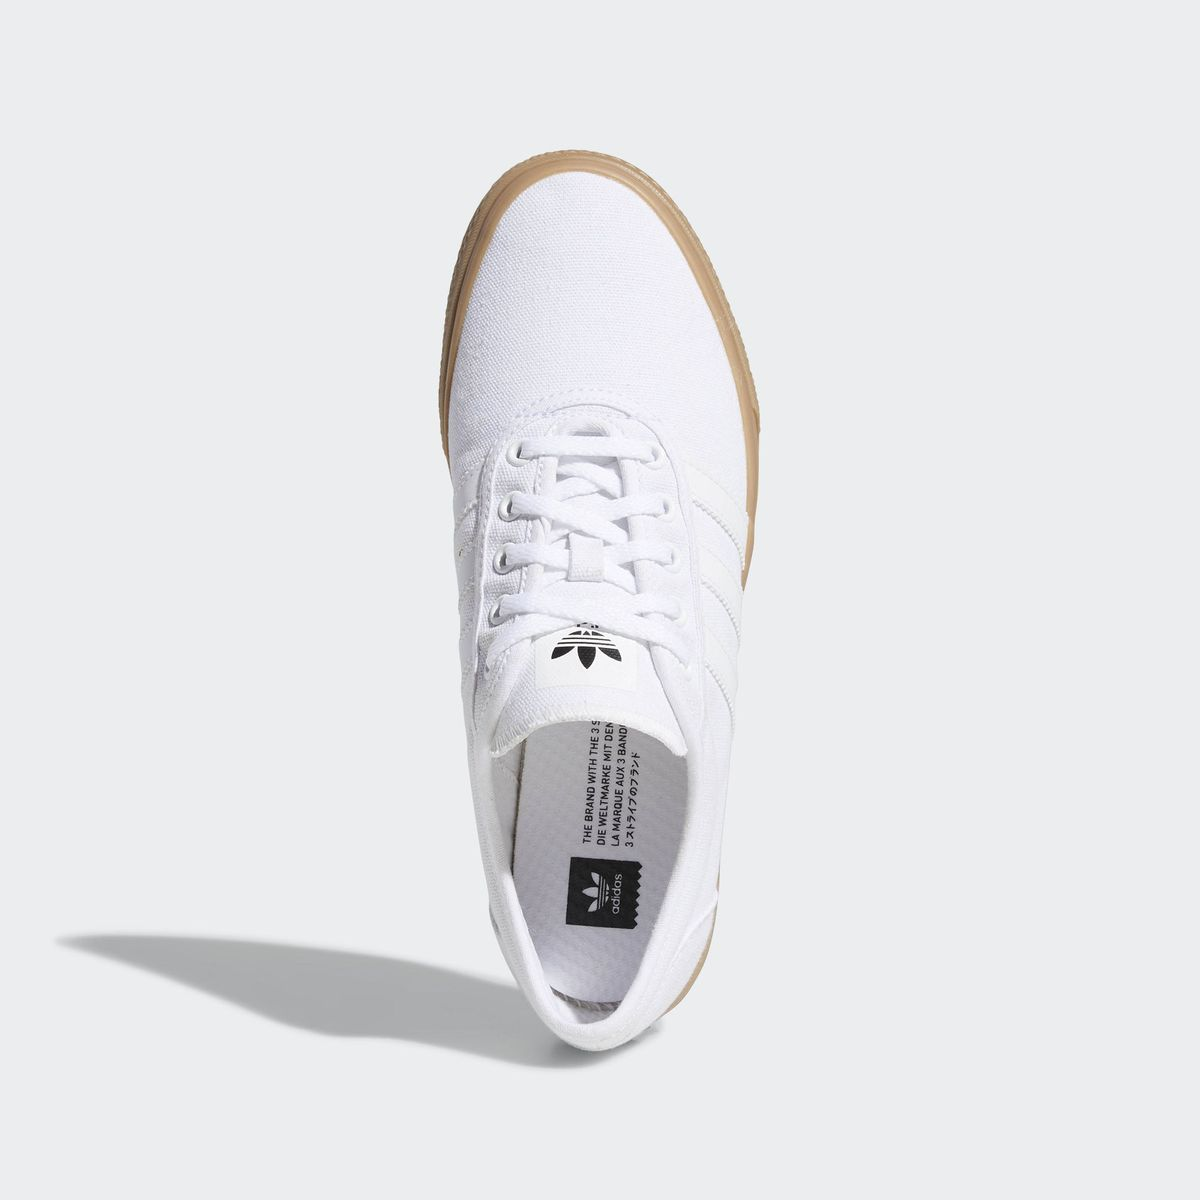 Baskets Chaussure Adiease Taille : 42 23;44;44 23;45 13